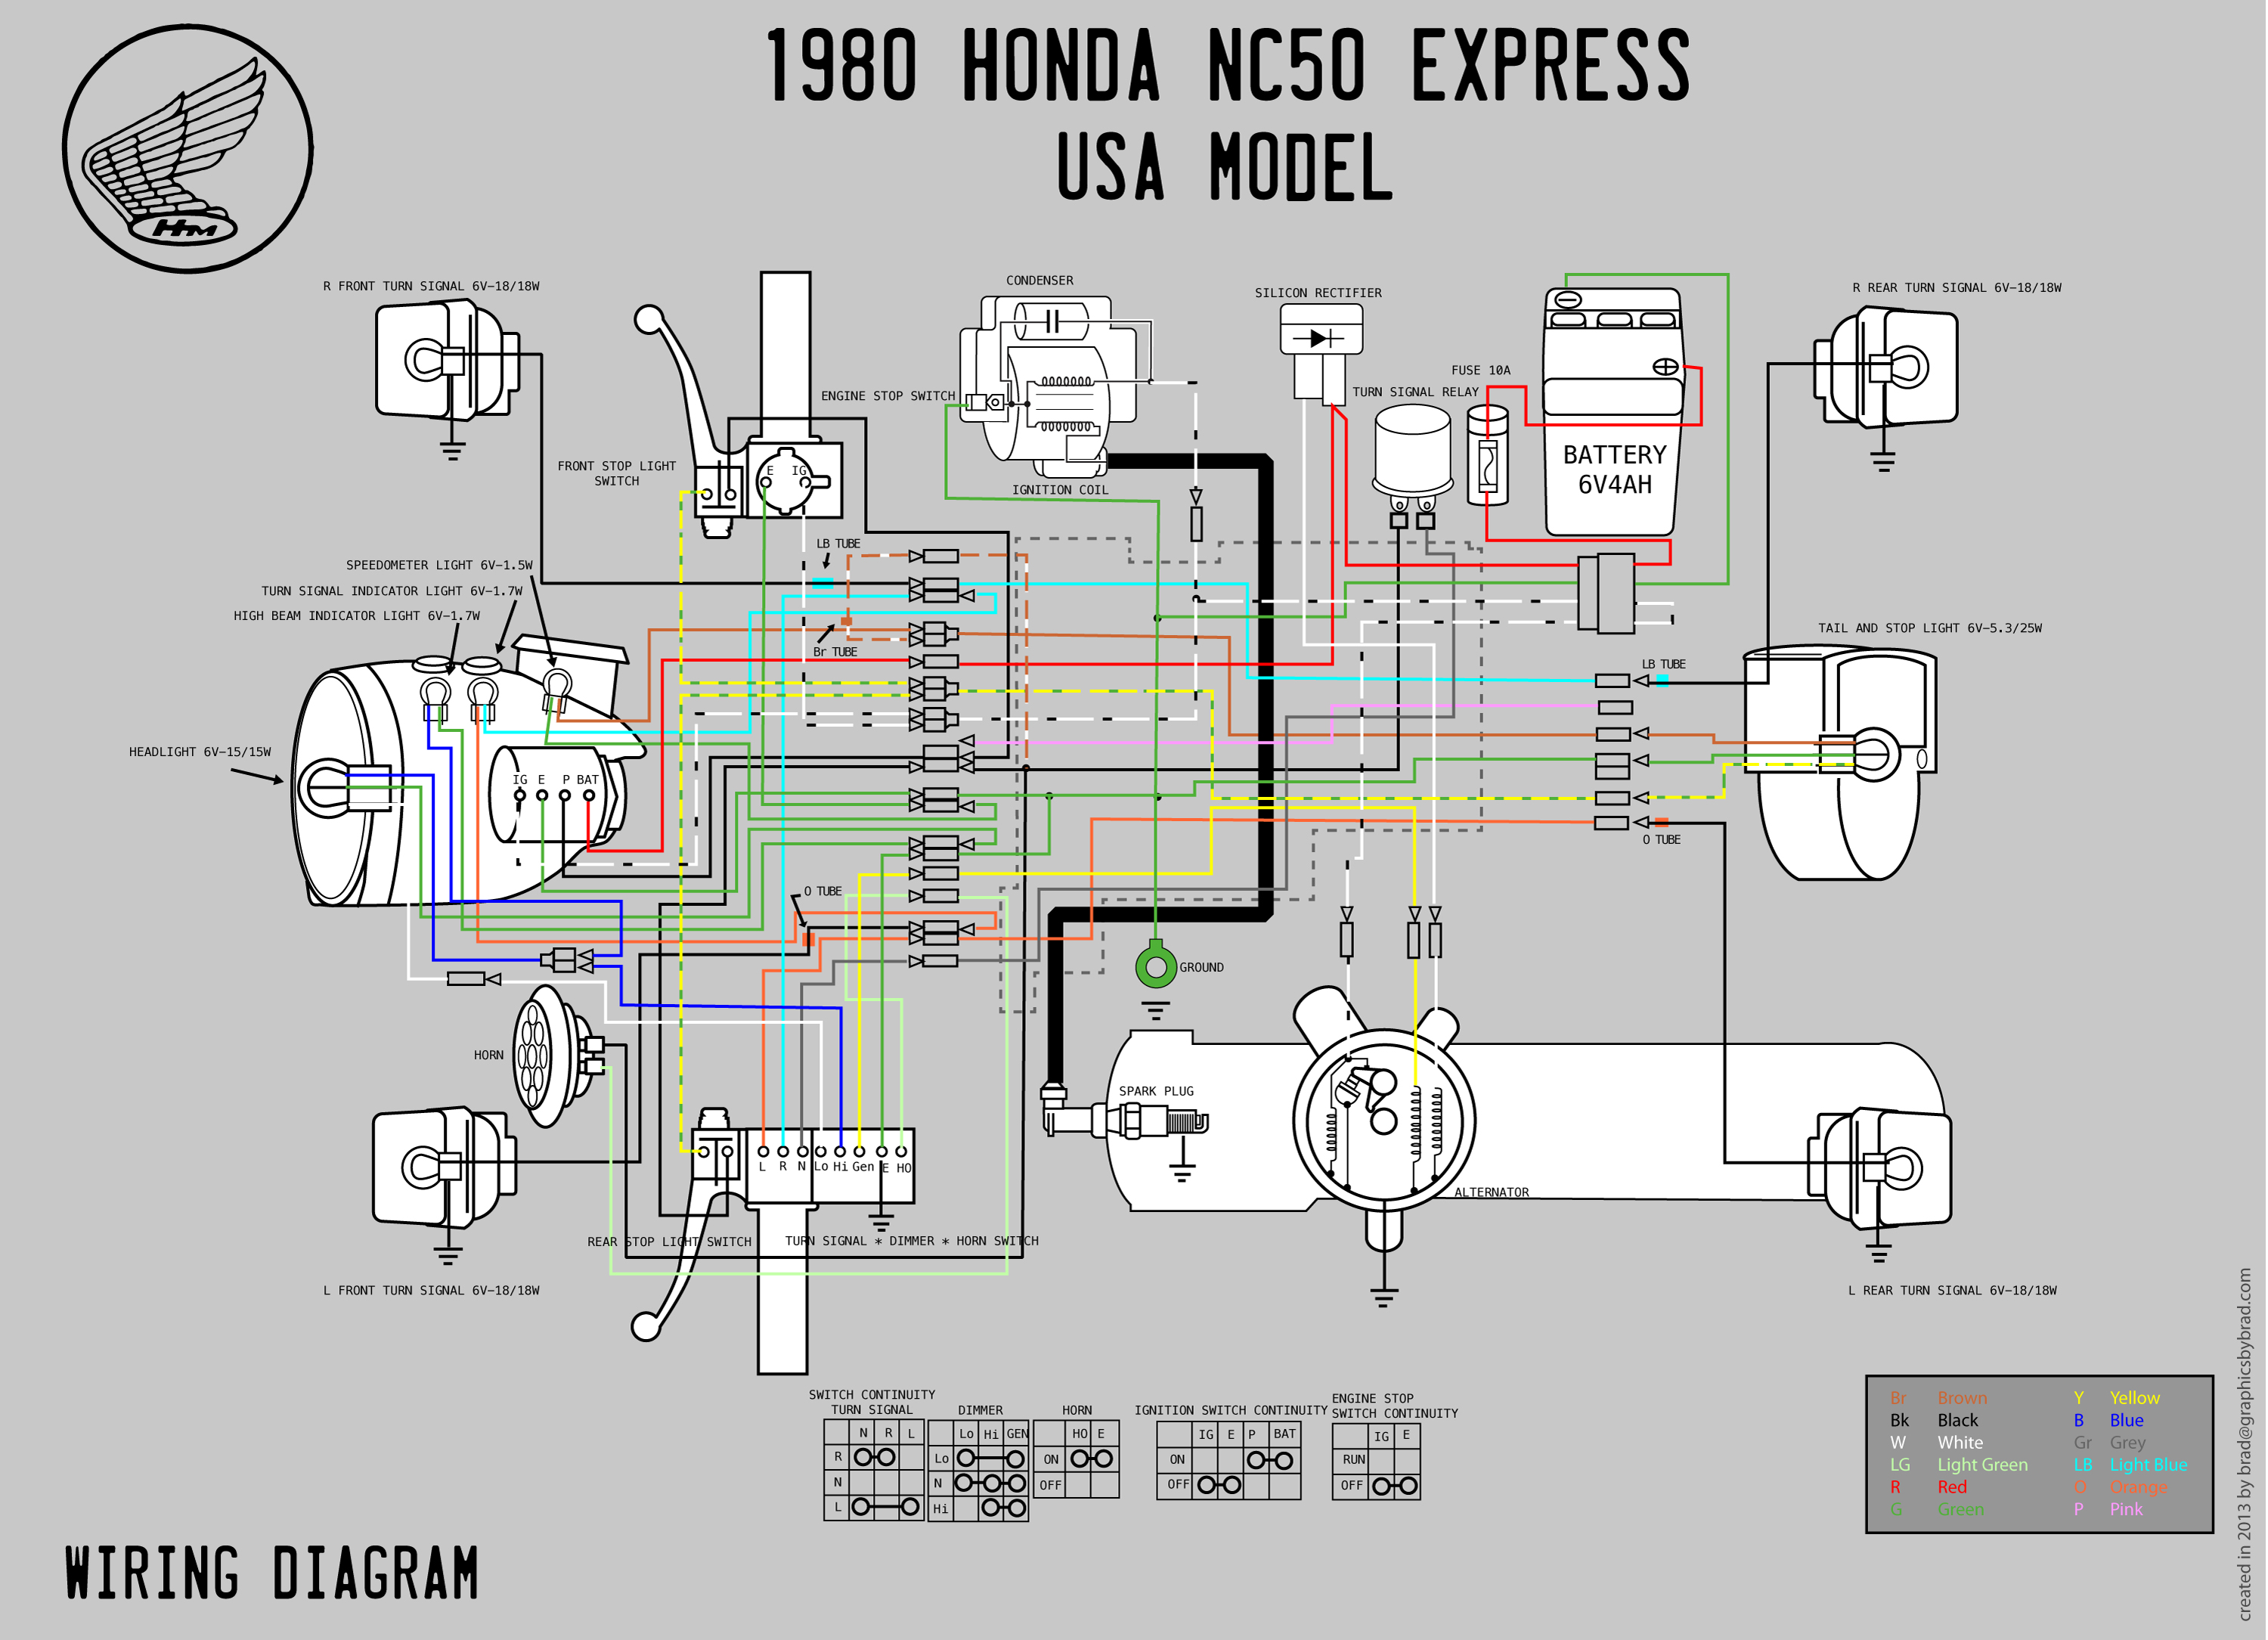 Free Honda Wiring Diagram Simple Car 1980 Nc50 Moped Wiki Diagrams